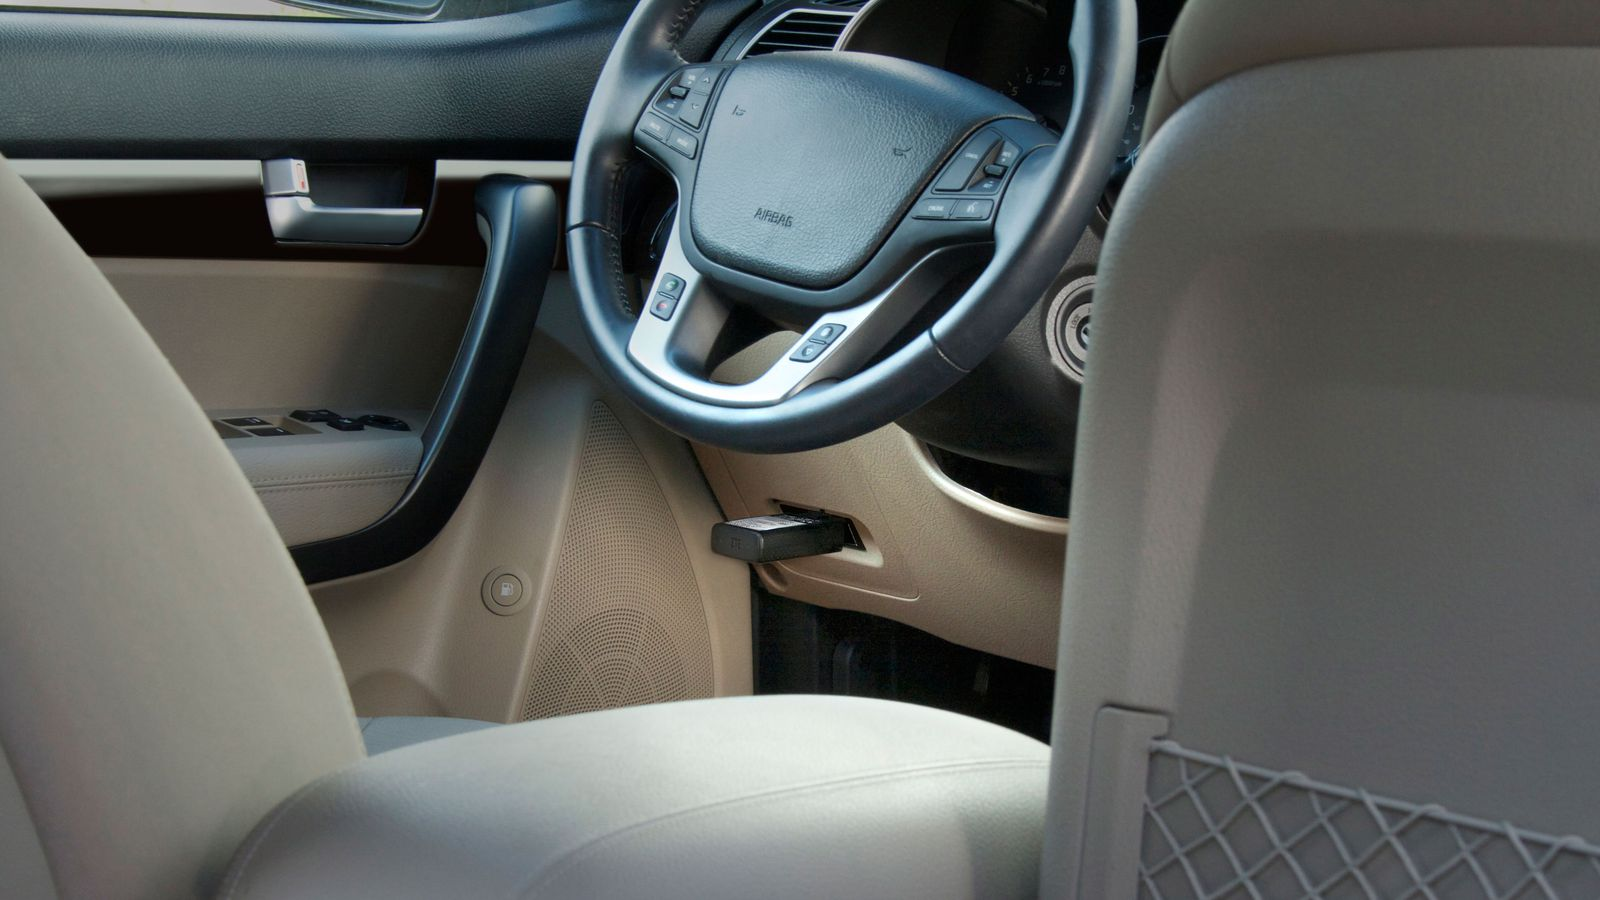 at t s mobley is its first plug in mobile hotspot for your car the verge. Black Bedroom Furniture Sets. Home Design Ideas